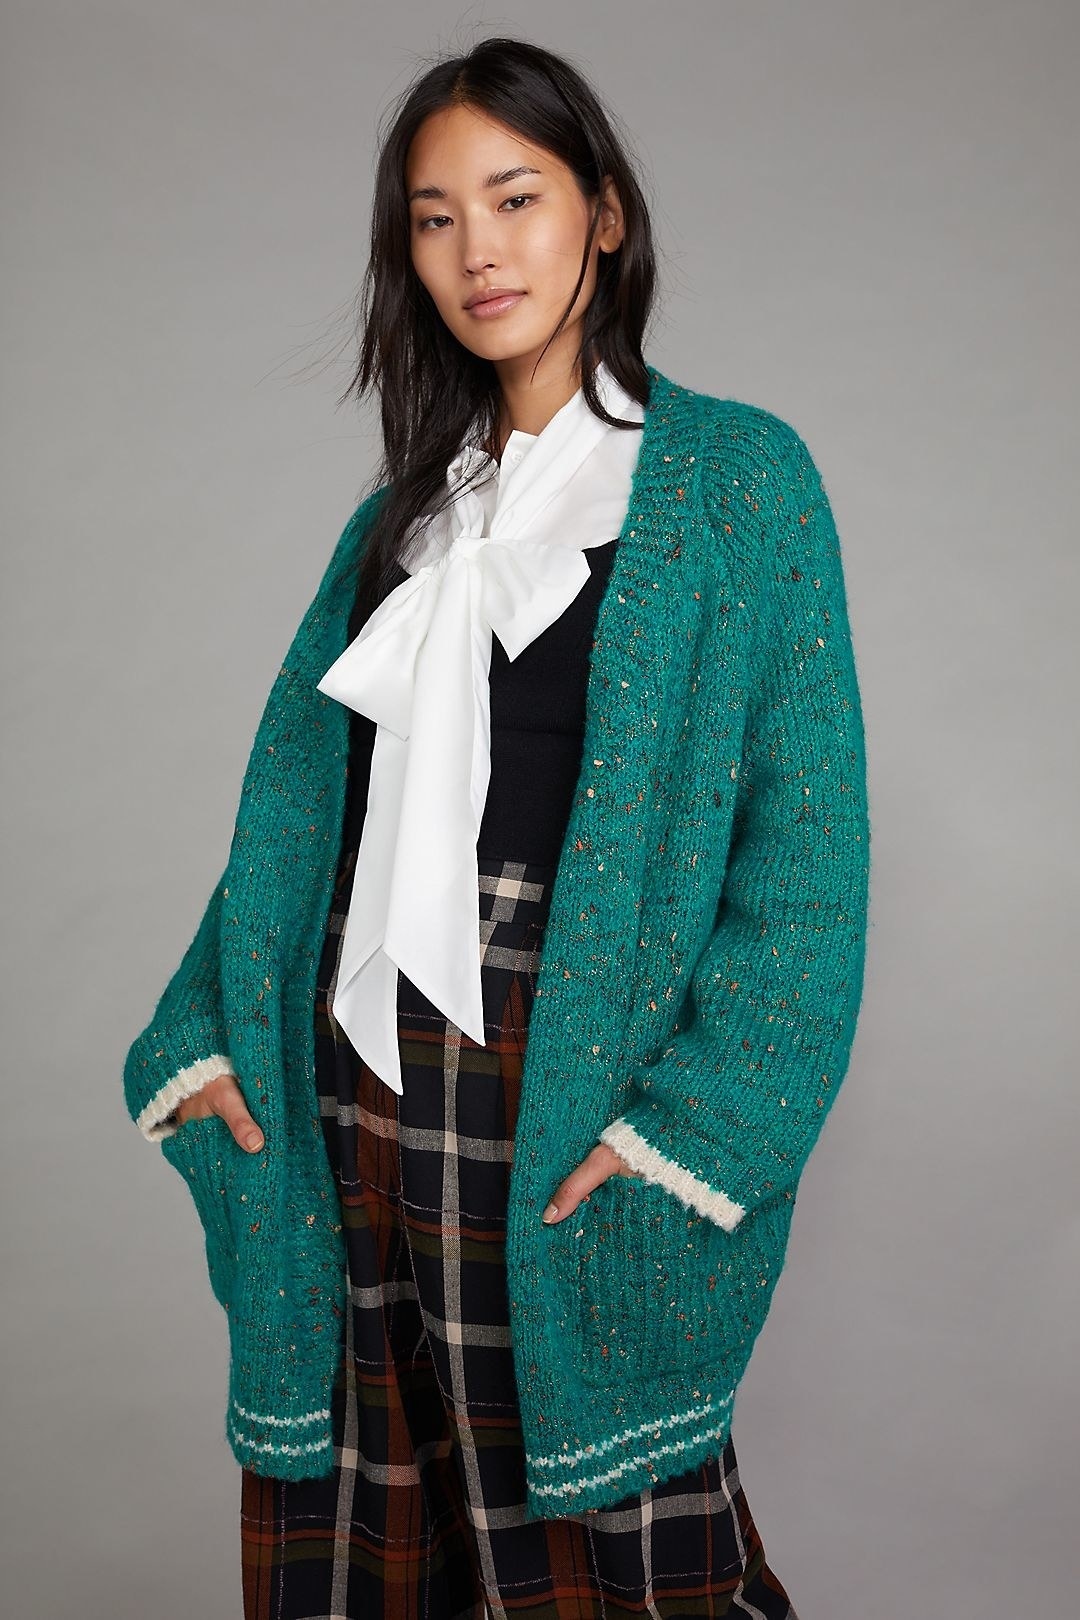 modwel wearing the green sweater over a black and white top and plaid pants